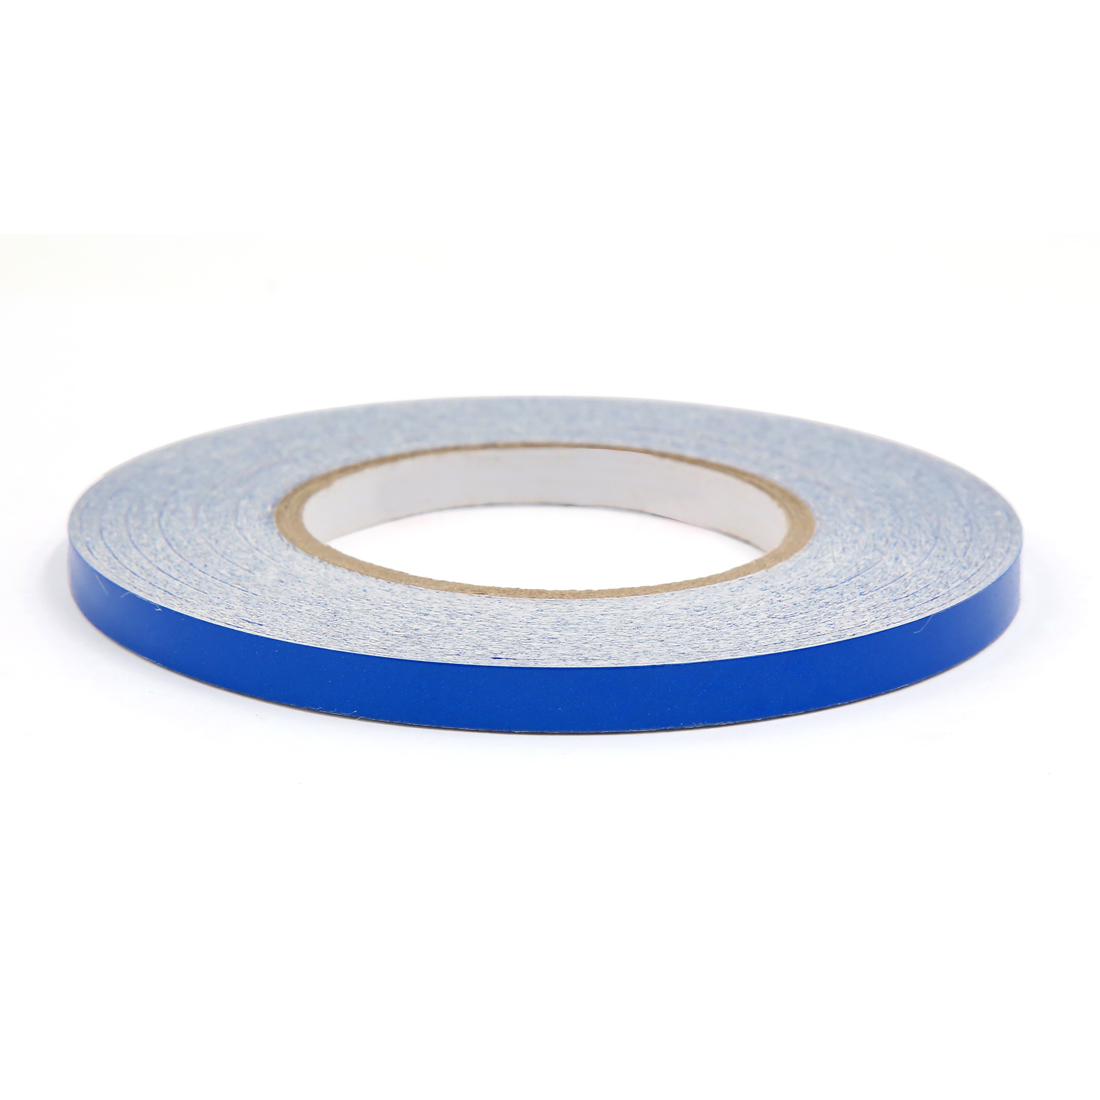 Blue Adhesive Sticker Luminous Reflective Tape Decol Stripe for Car Truck Boat